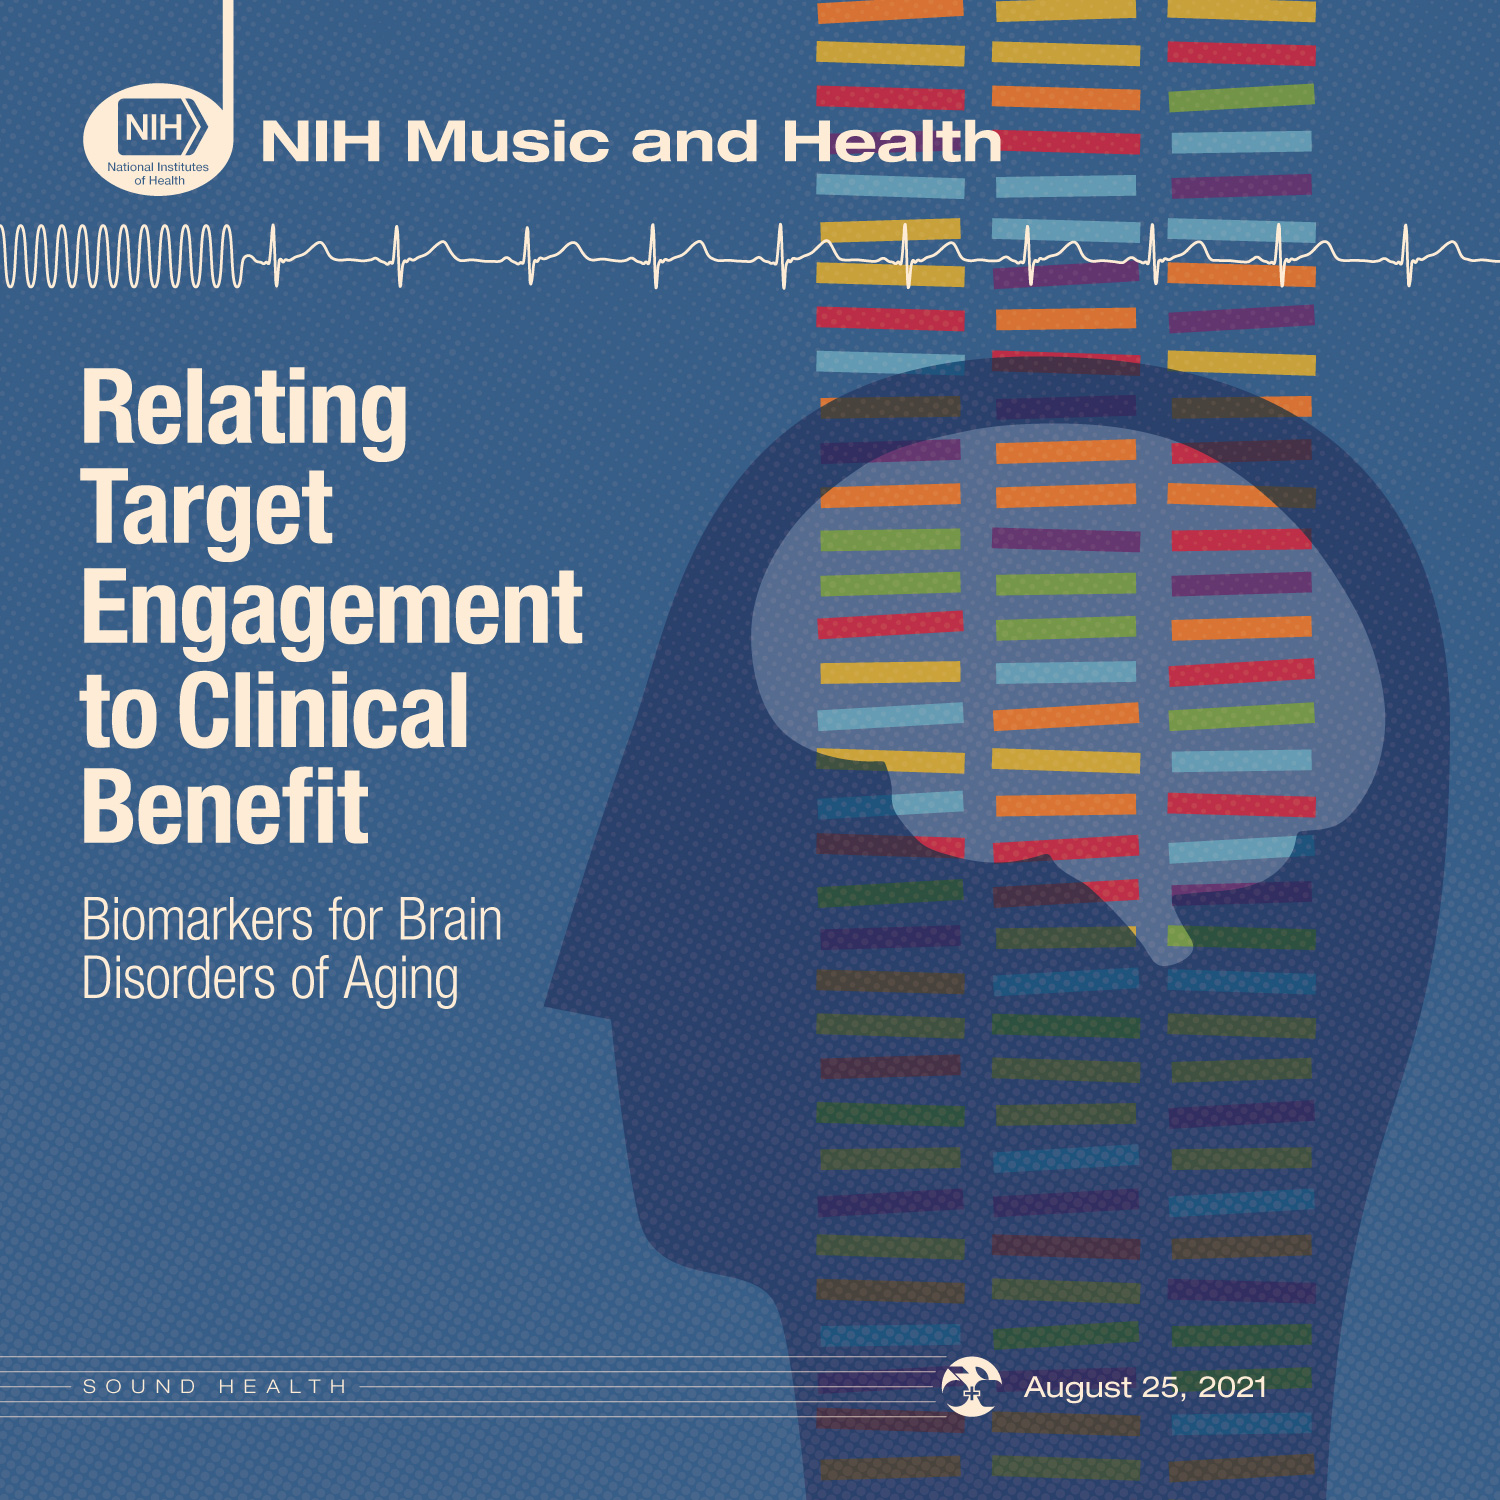 Music and Health: biomarkers for brain disorders of aging